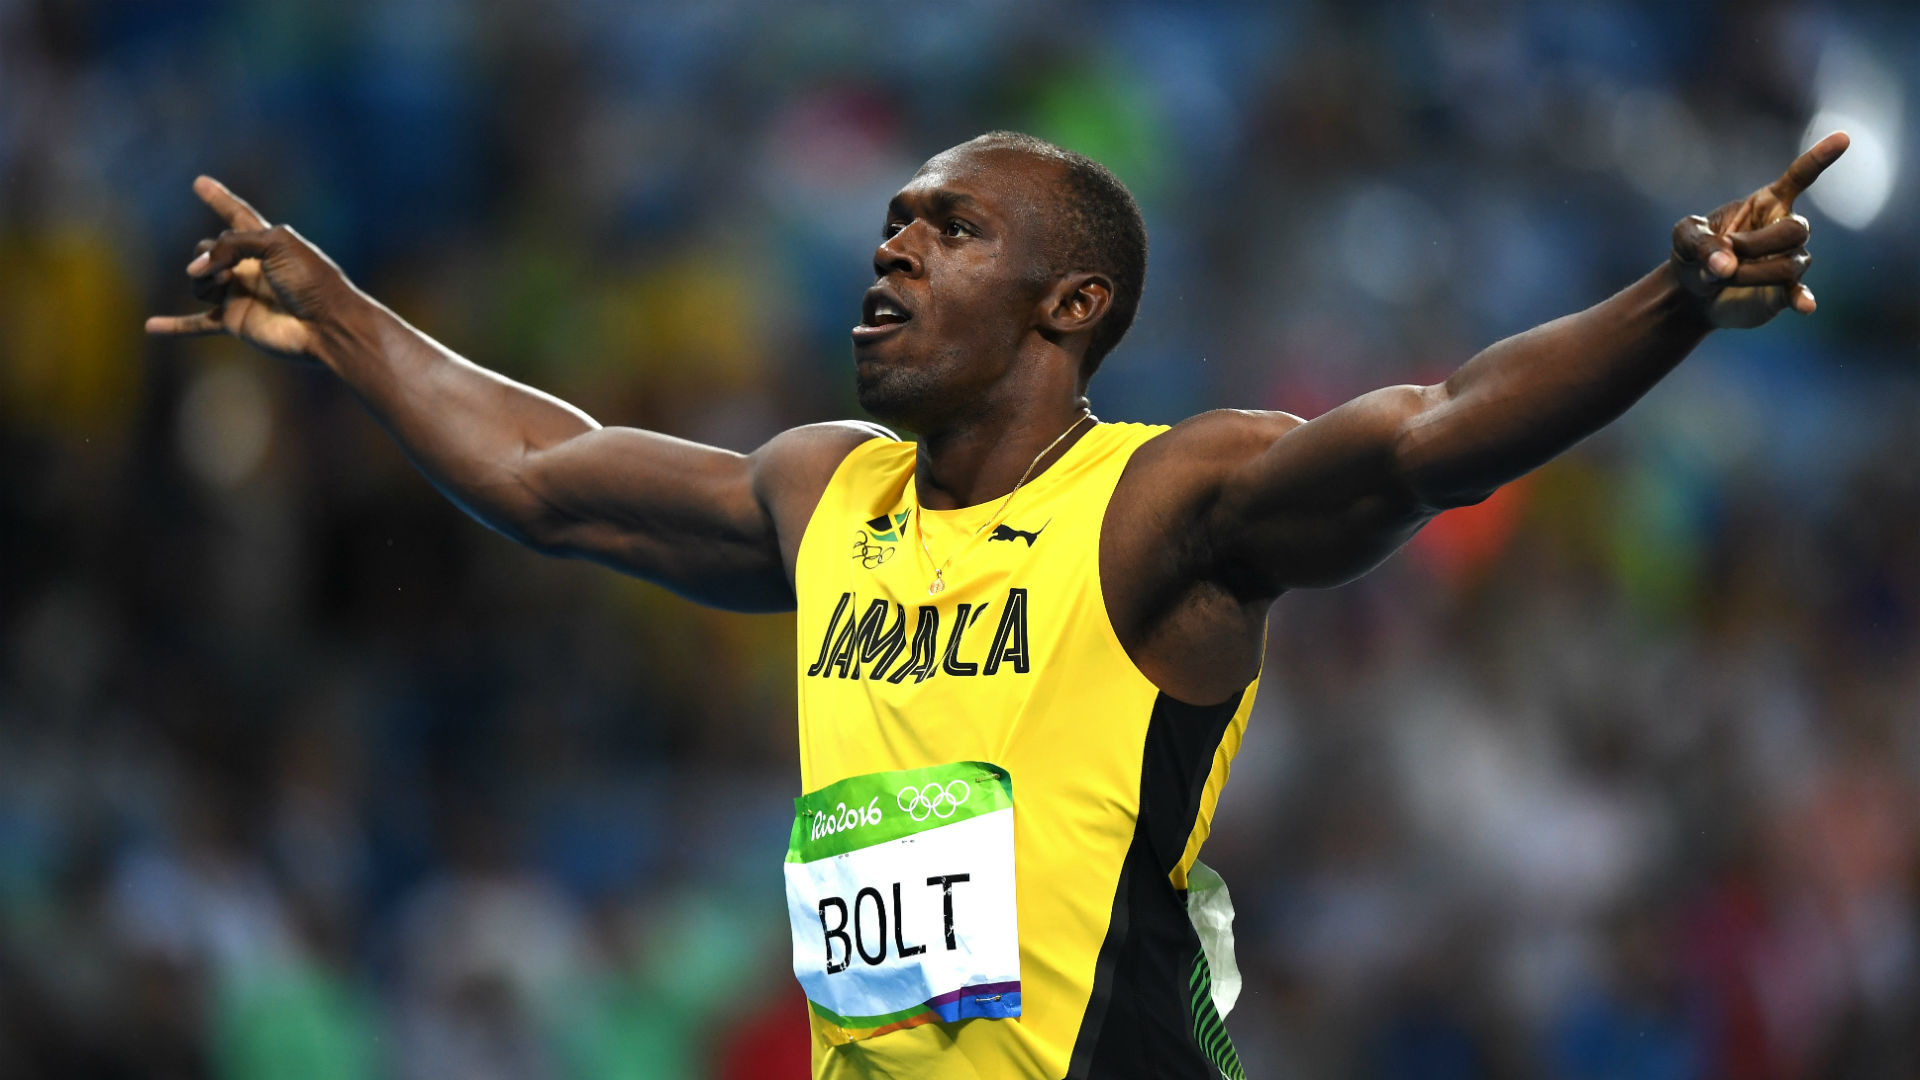 1920x1080  Usain Bolt Shatters World Record for Longest Victory Celebration In Olympic  History